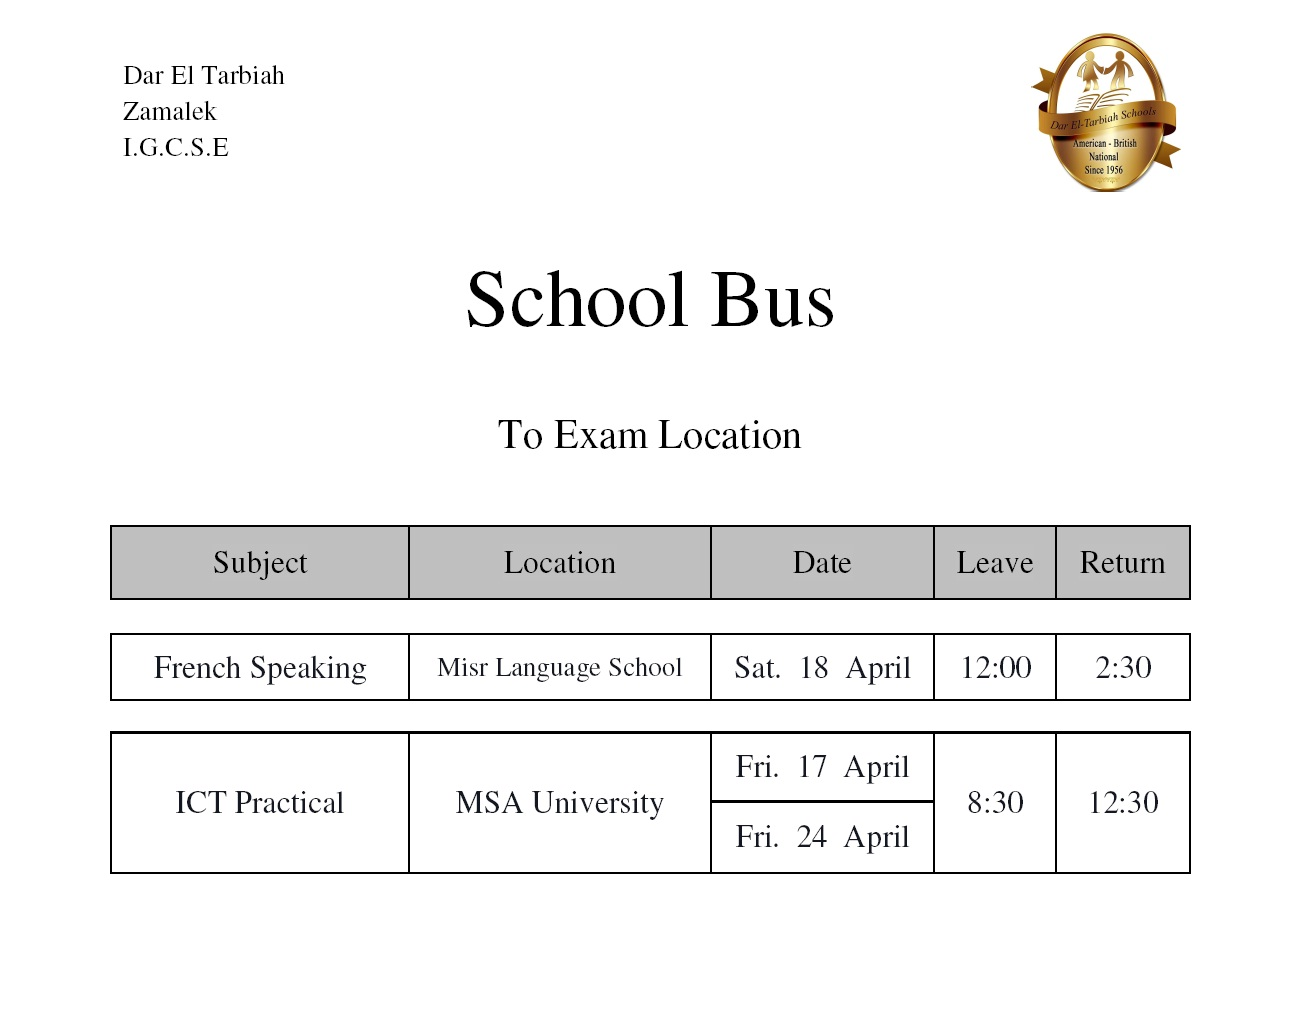 IG Zamalek - School Bus to Exam Location